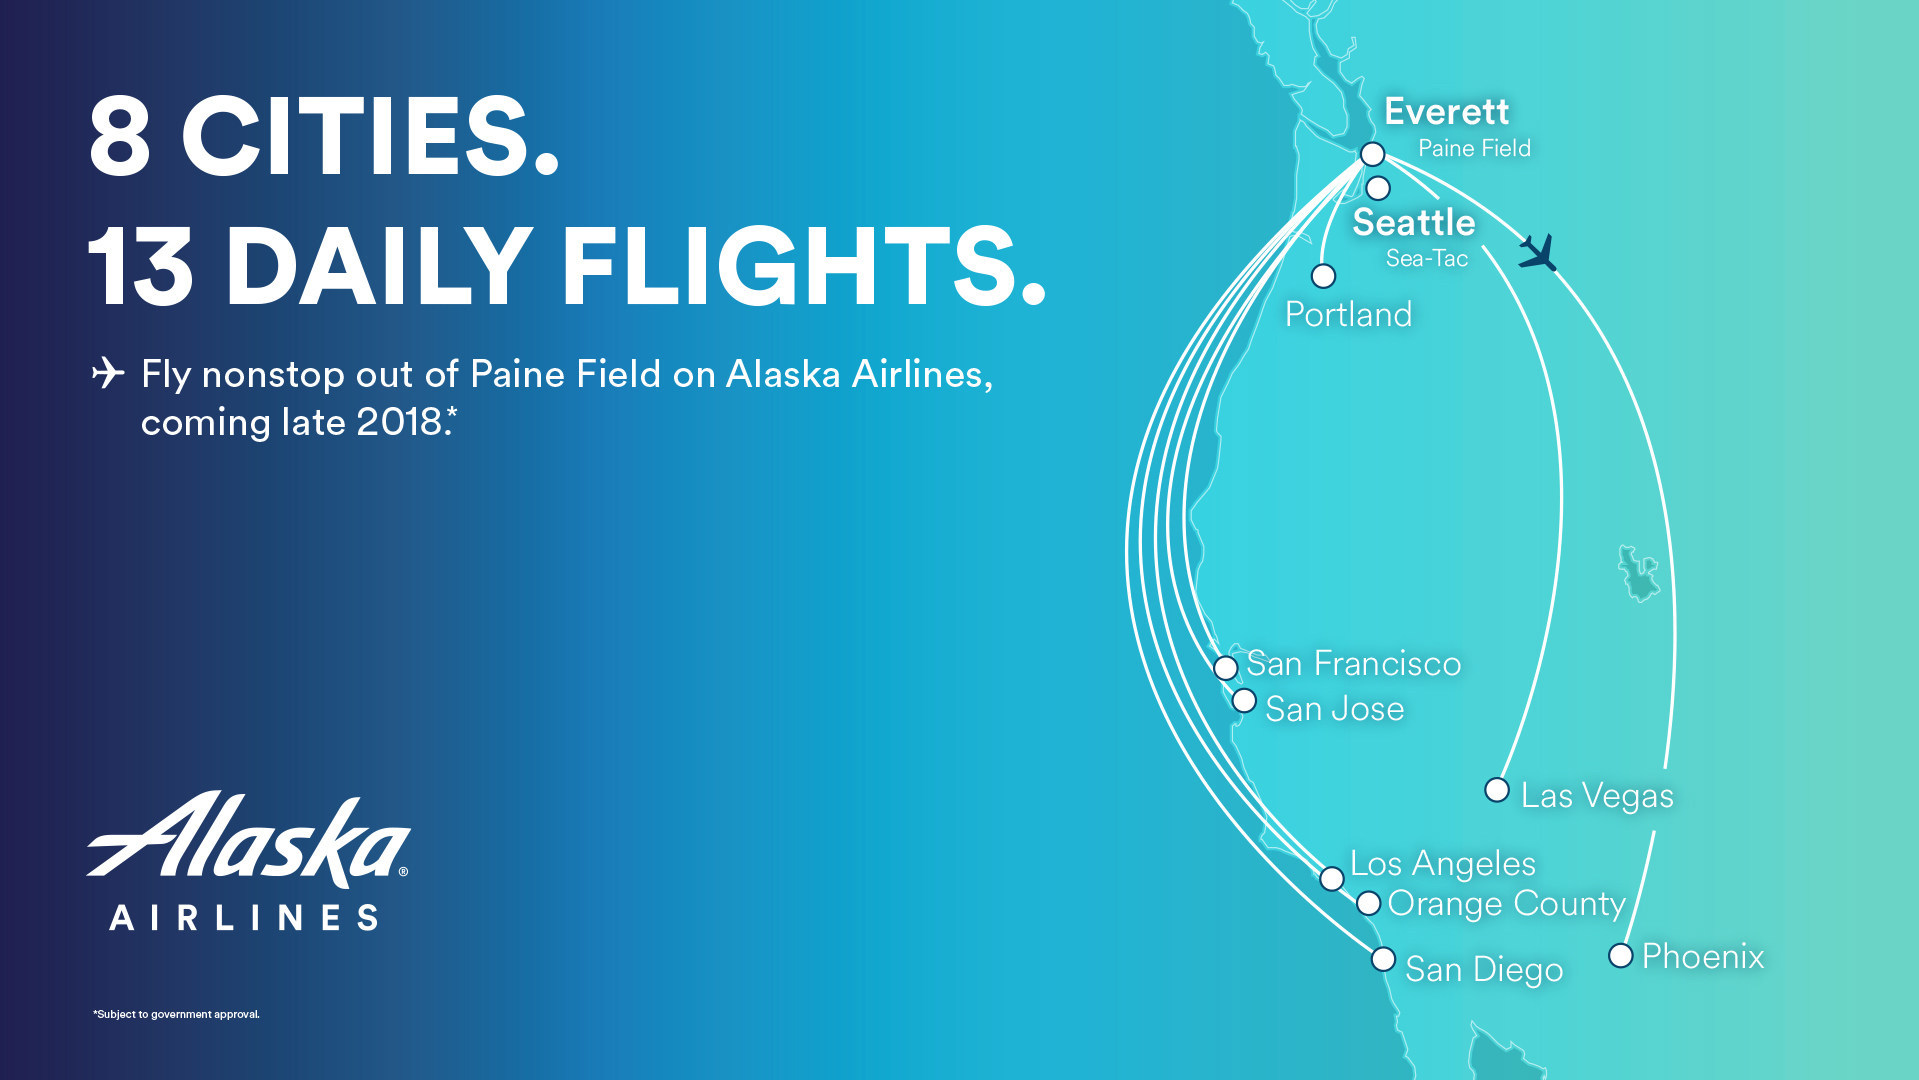 Alaska Airlines announces eight non-stop routes from Paine Field